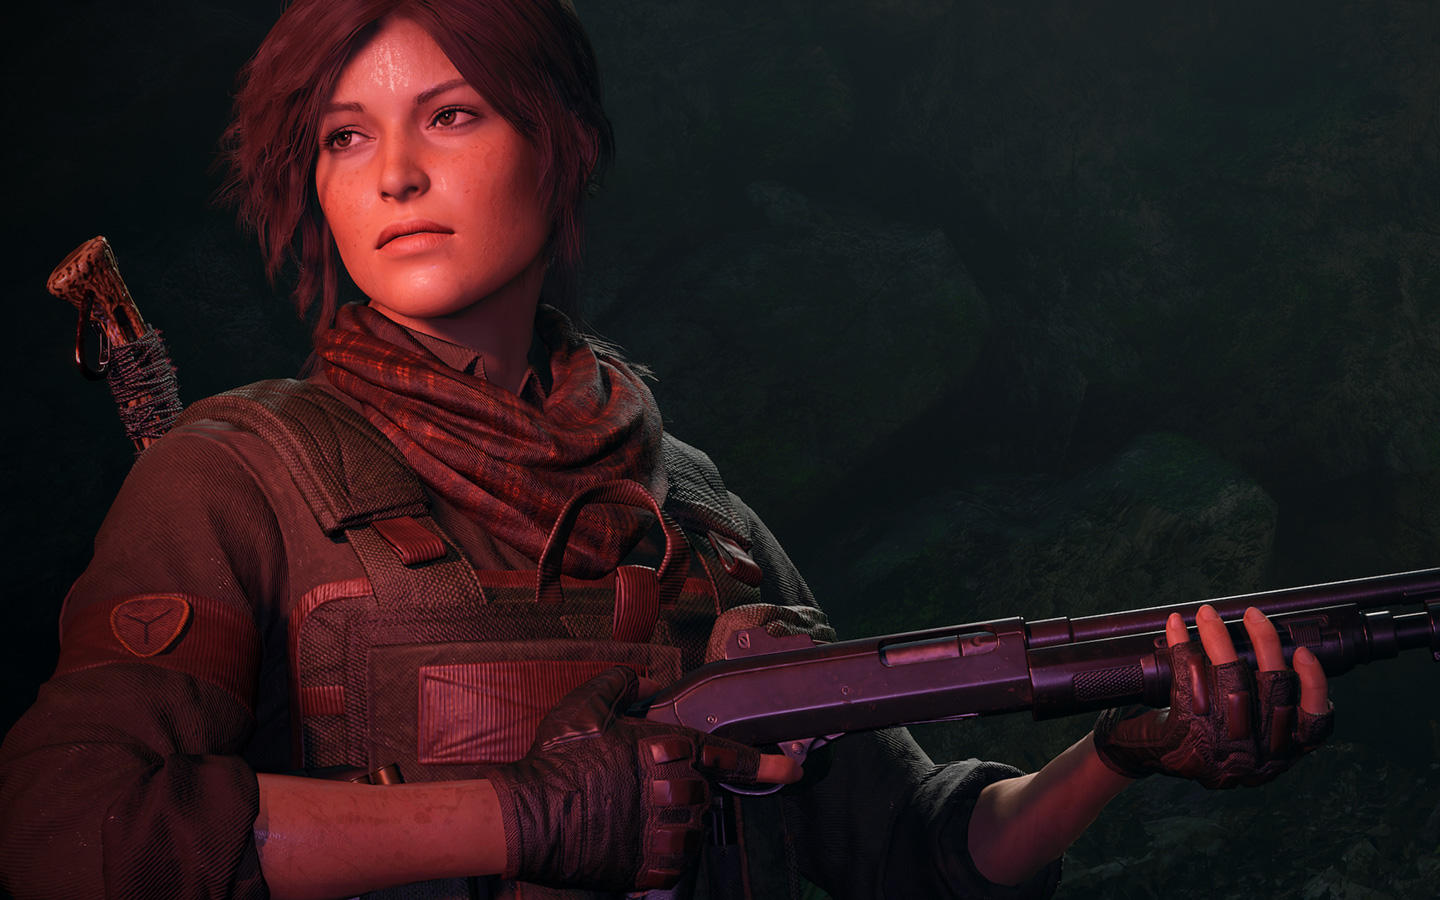 Shadow of the Tomb Raider Wallpaper in 1440x900